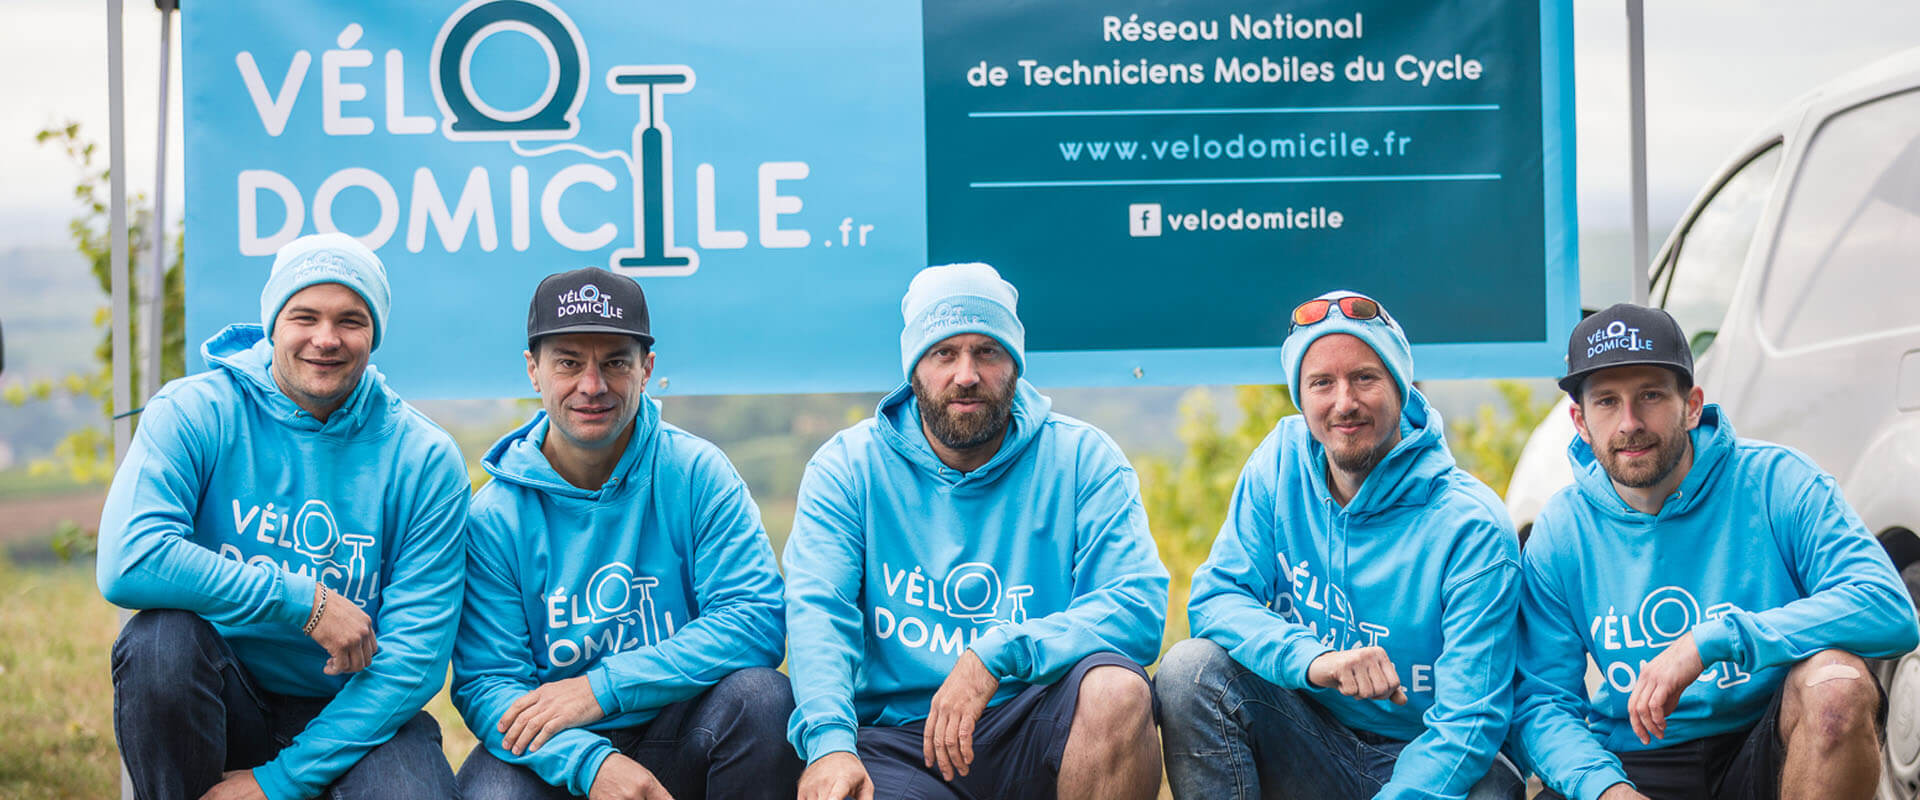 <strong>MarcoVelo devient VéloDomicile Strasbourg</strong>